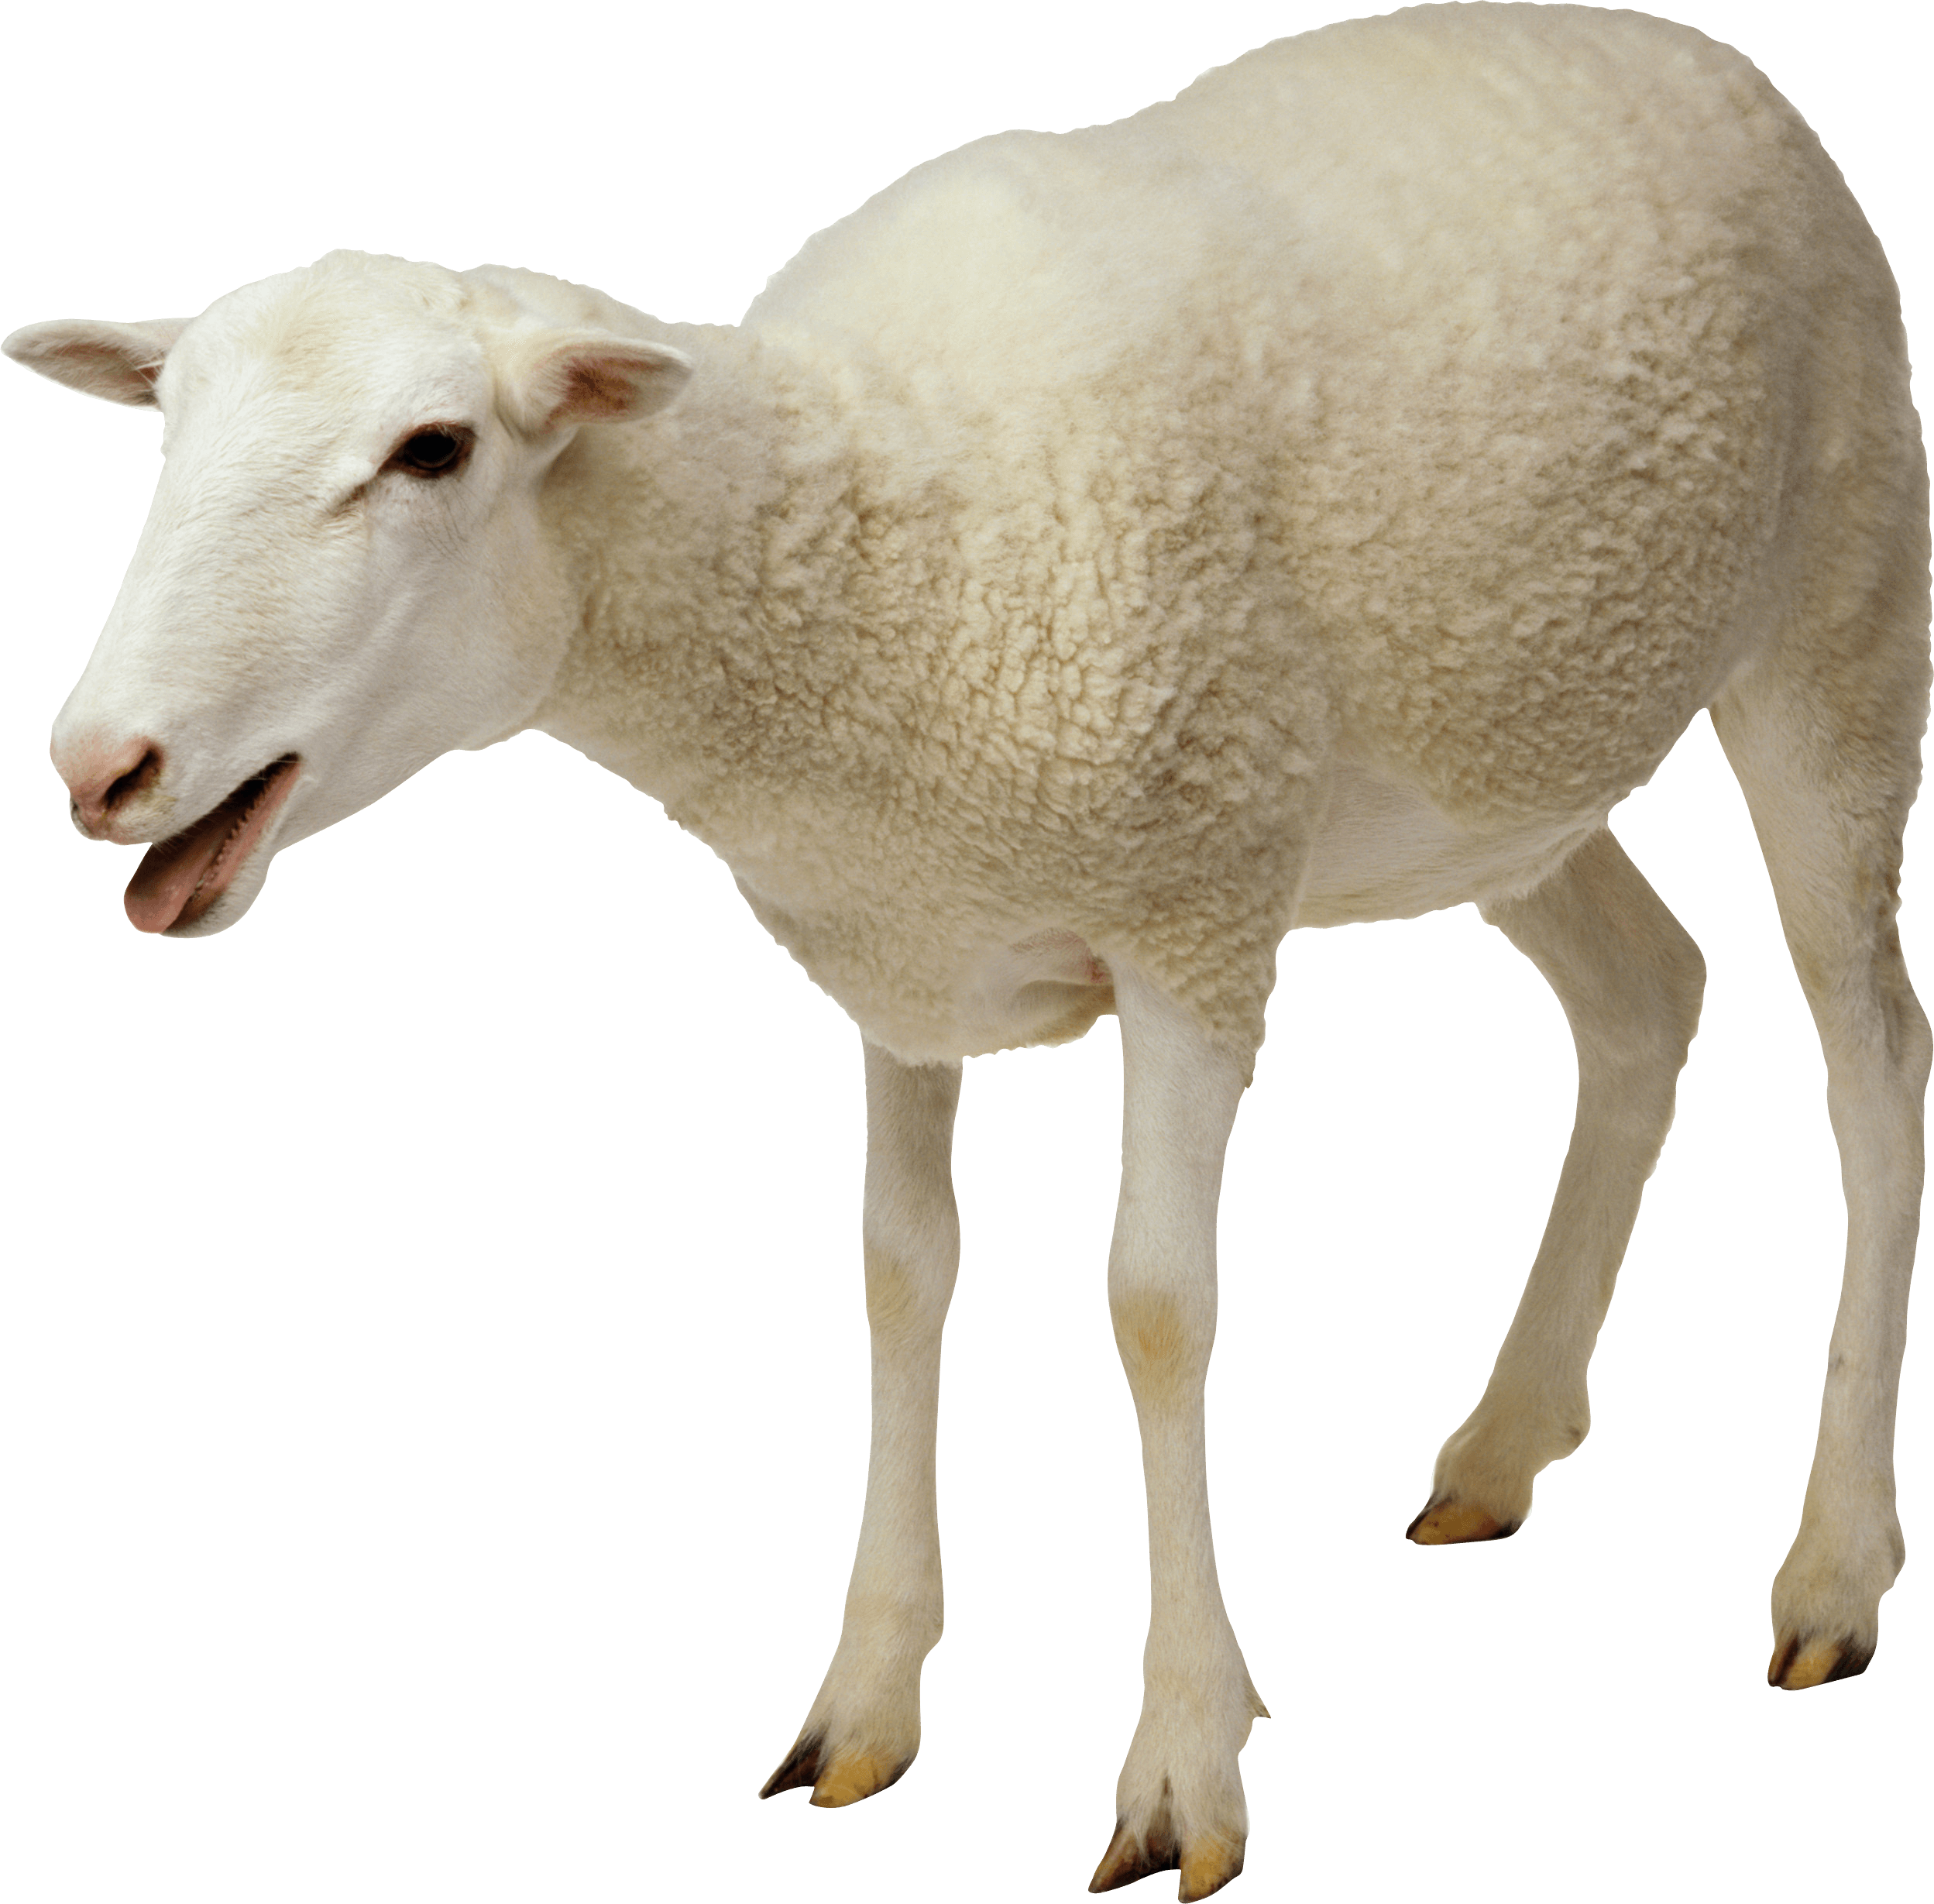 Herd of sheep png. Transparent images pluspng image